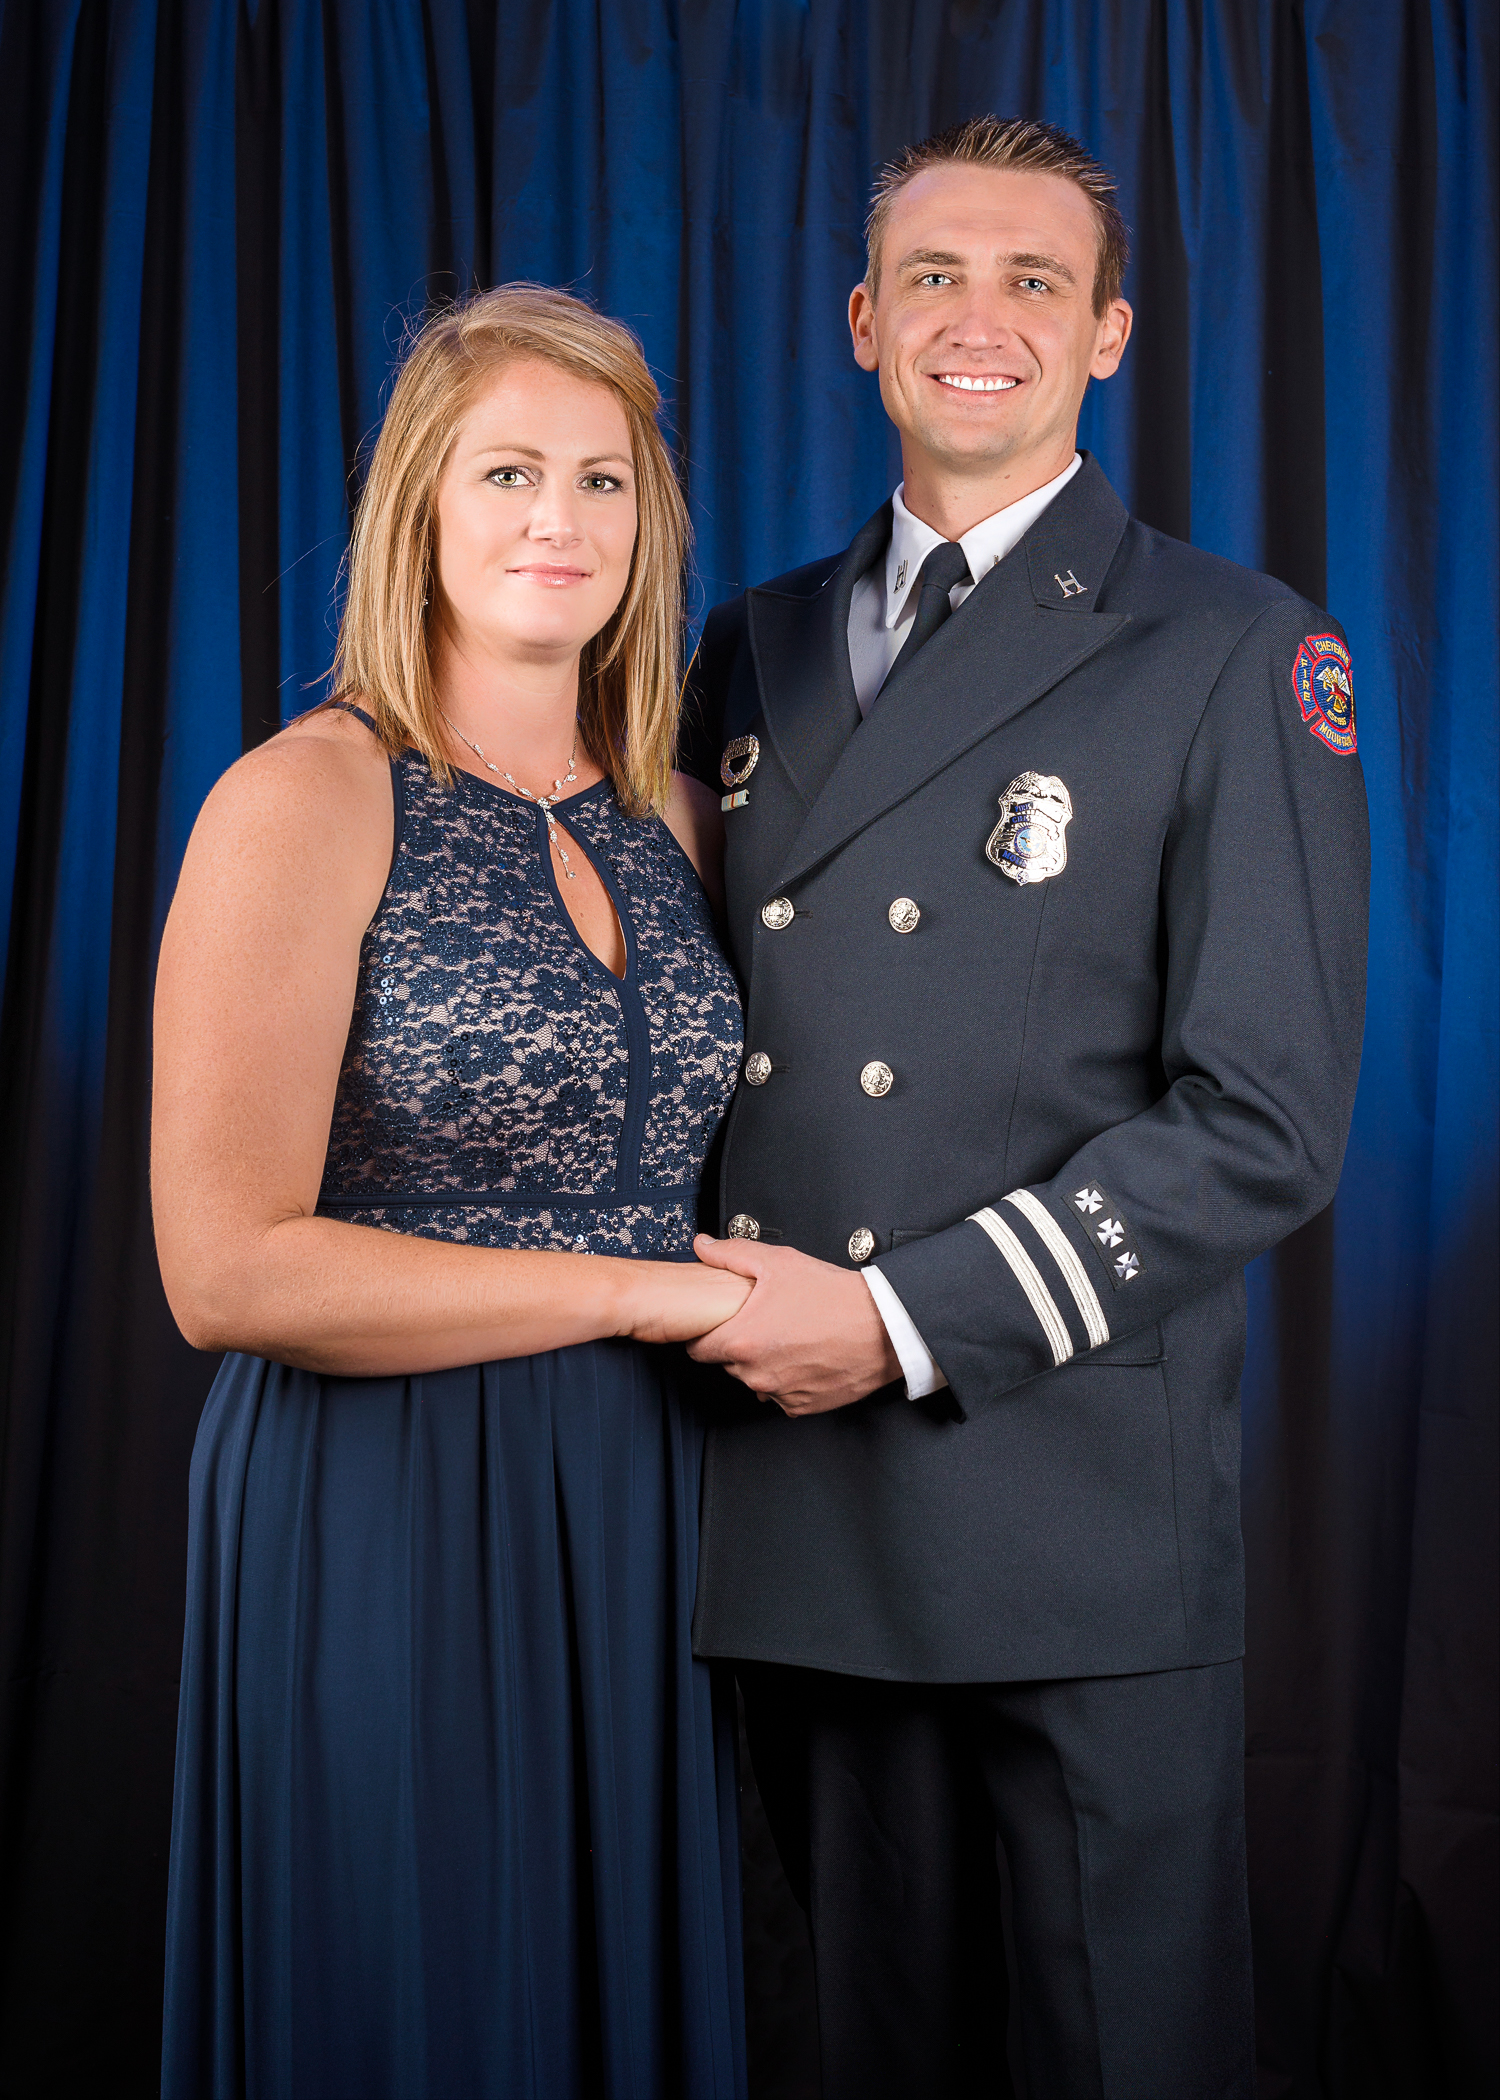 Couple's Portrait at the 2018 D.o.D. Firefighter's Ball